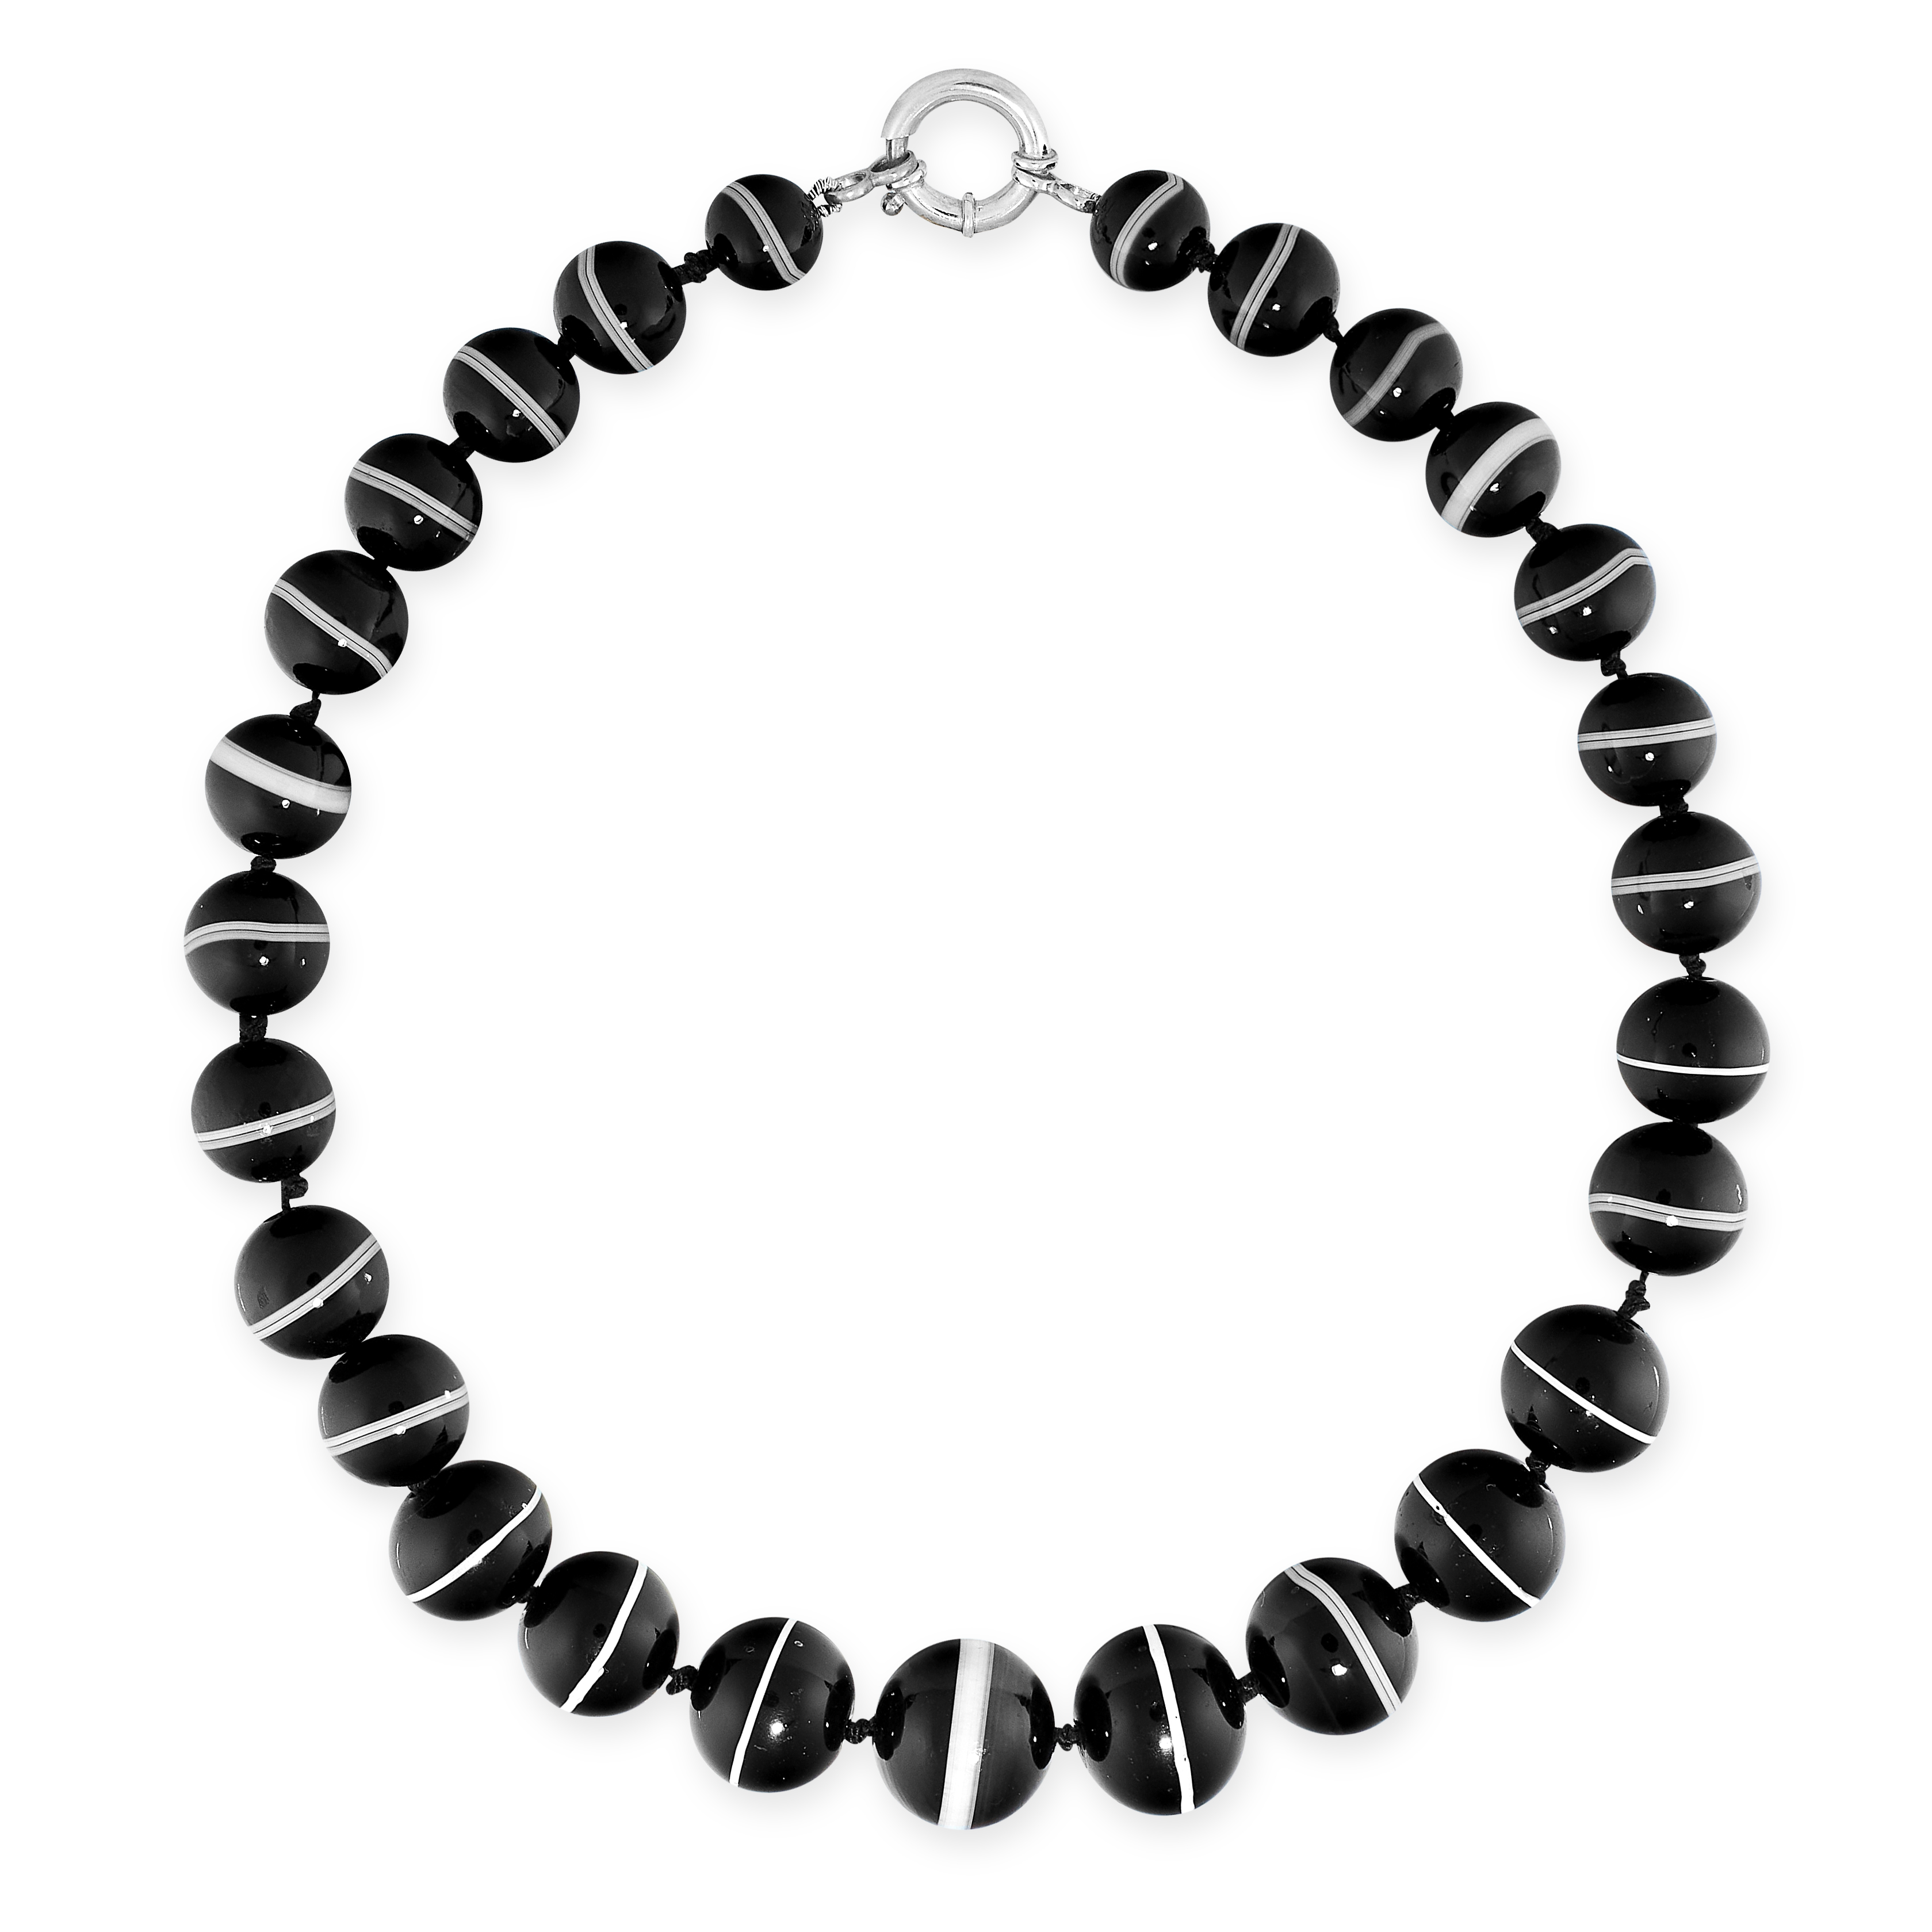 A BANDED AGATE BEAD NECKLACE comprising a single row of twenty-seven graduated black banded agate